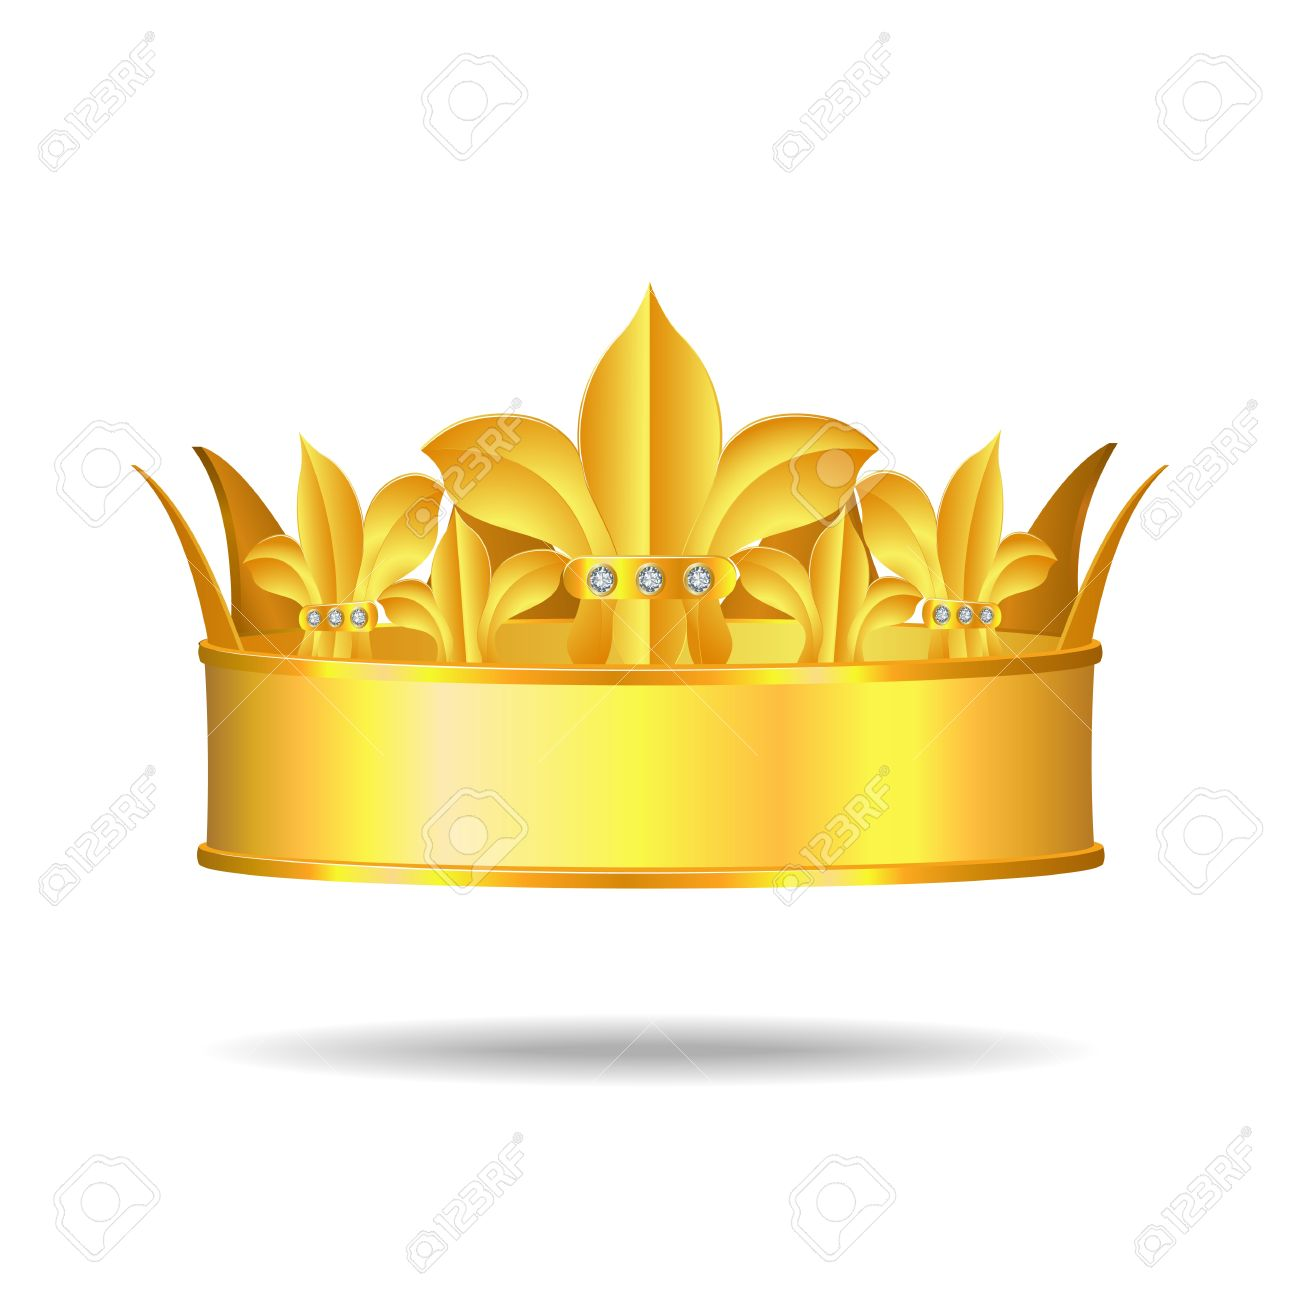 Gold Crown With White Gems Royalty Free Cliparts, Vectors, And.